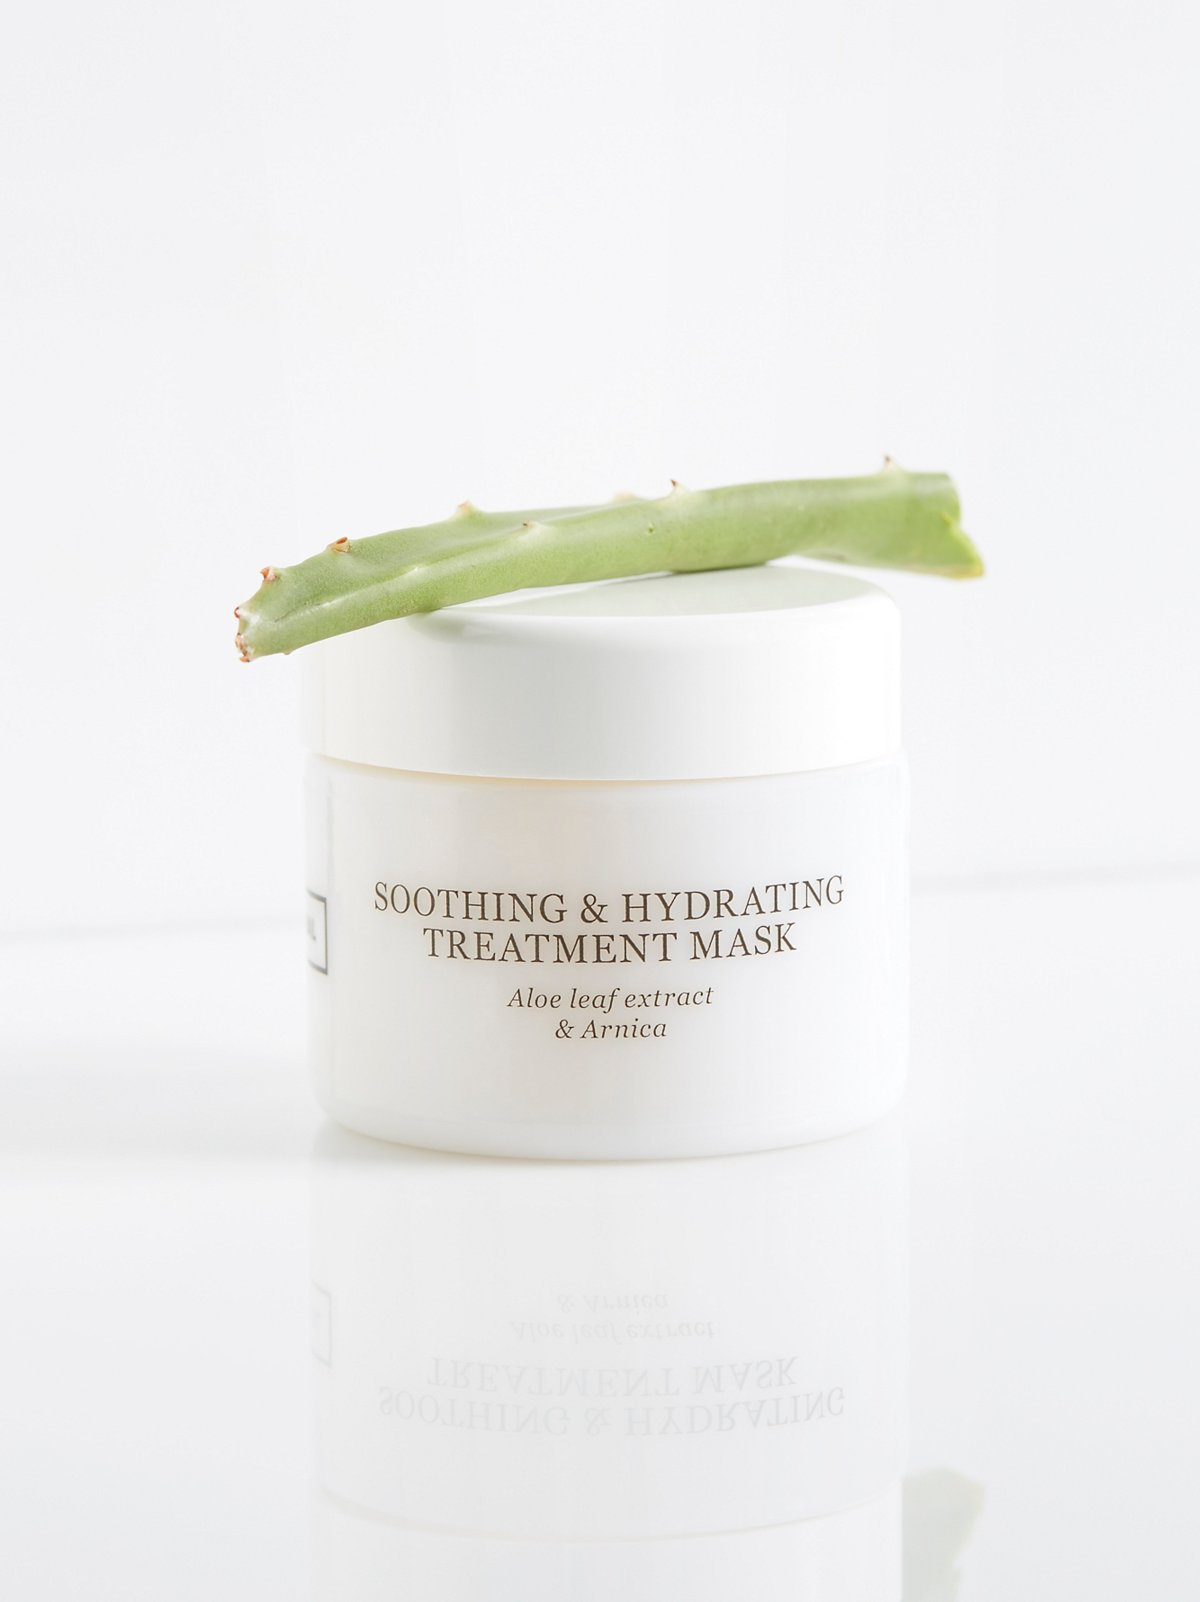 Soothing & Hydrating Treatment Mask